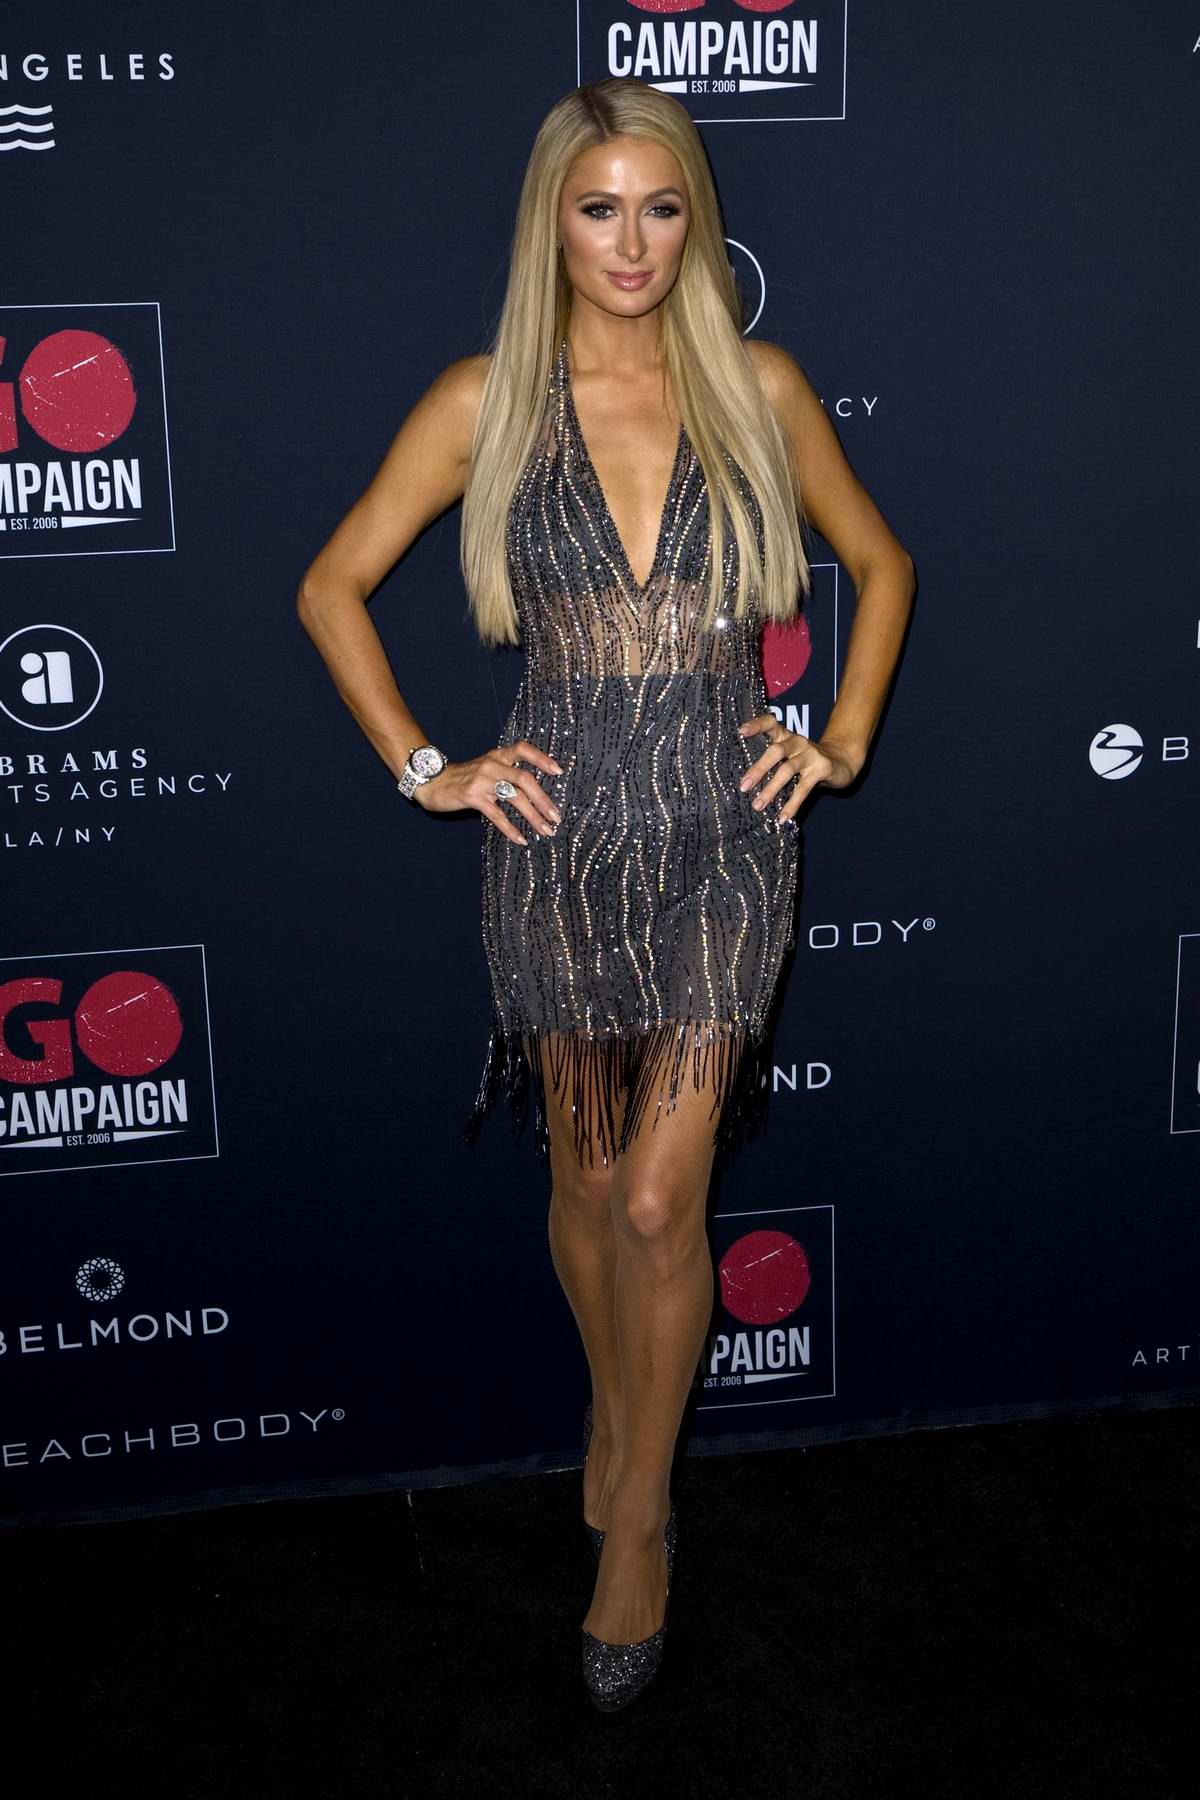 Paris Hilton attends the GO Campaign's 13th Annual Gala at NeueHouse in Hollywood, California